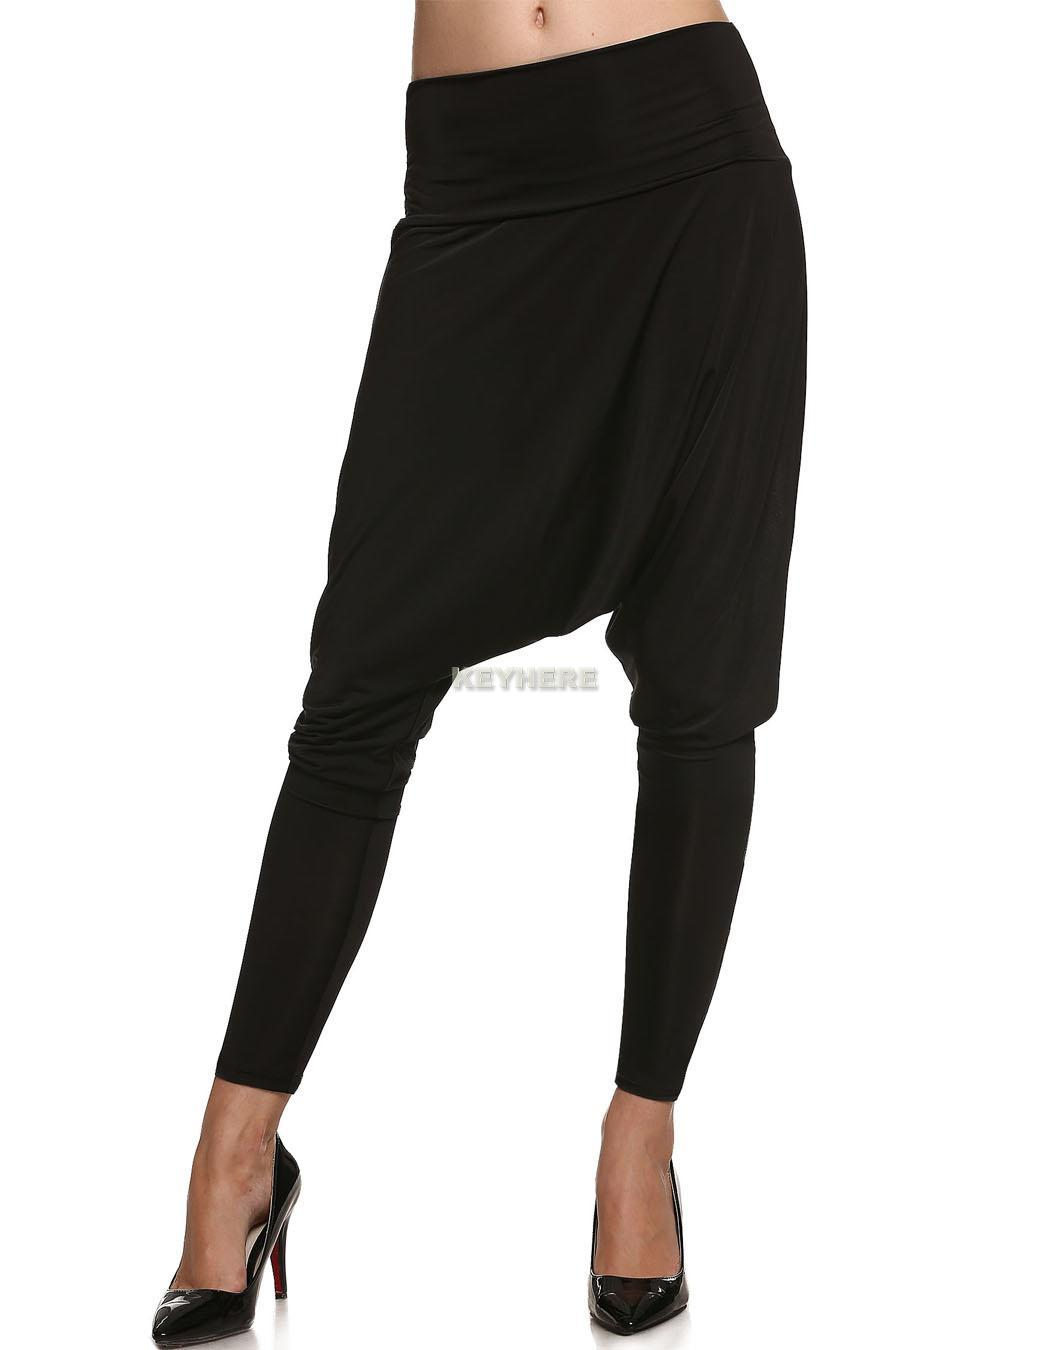 Model Baggy Cargo Pants For Women  HighFashionTipscom